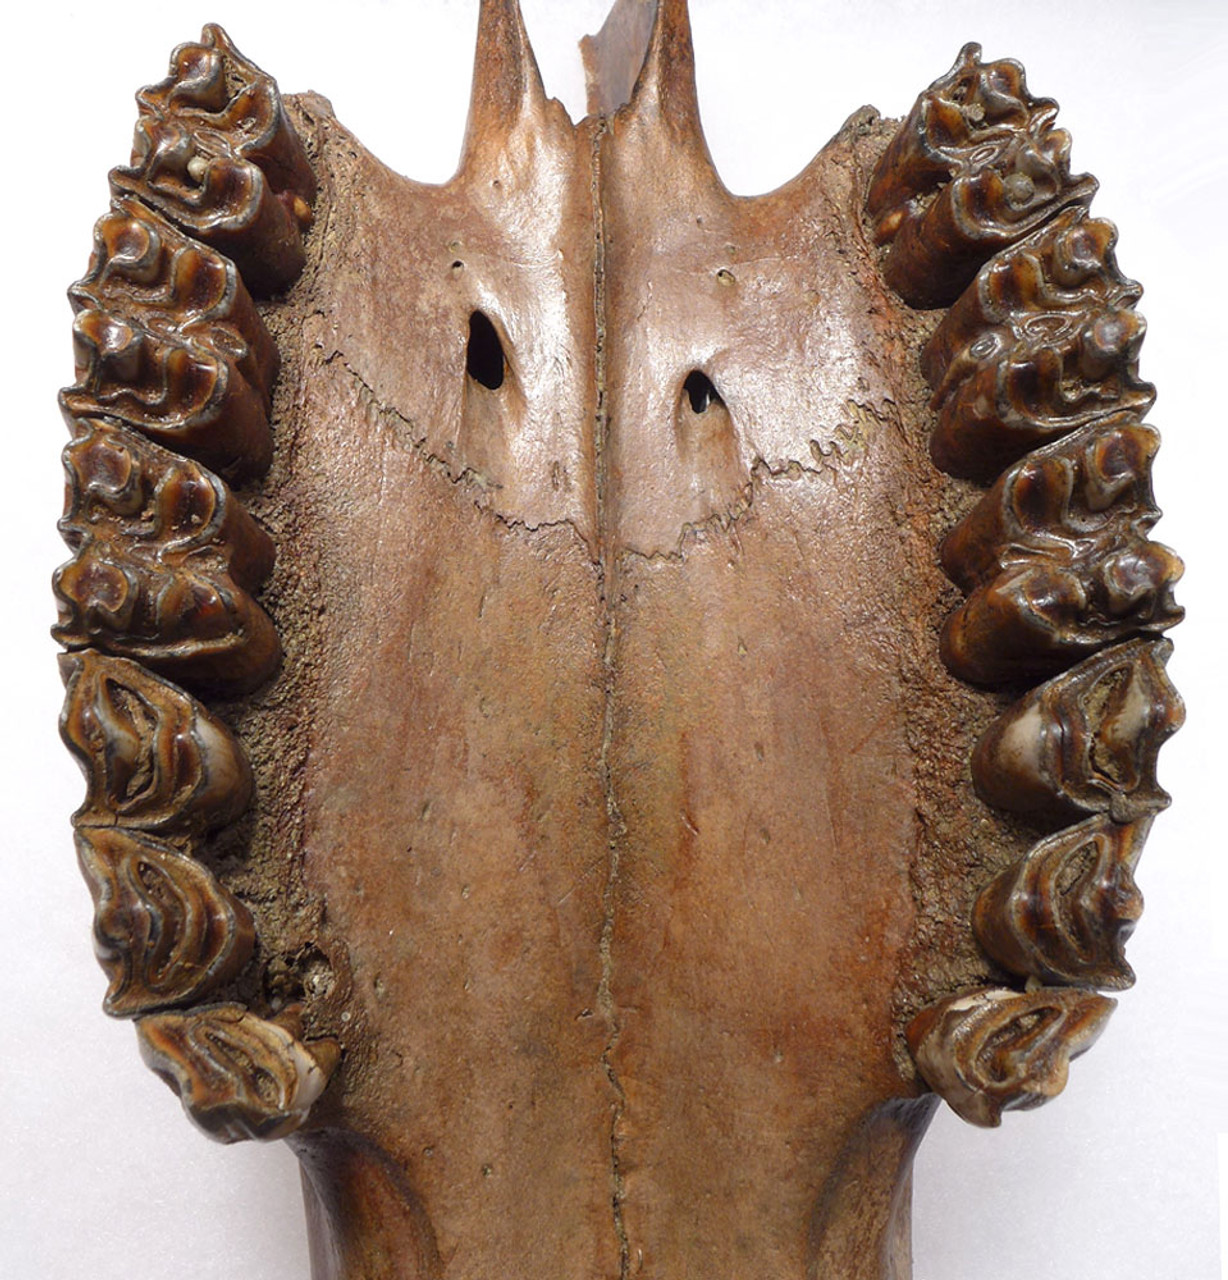 FOSSIL PARTIAL AUROCHS SKULL WITH COMPLETE PRE-MAXILLA AND MAXILLA AND FULL ARRAY OF TEETH *LMX213